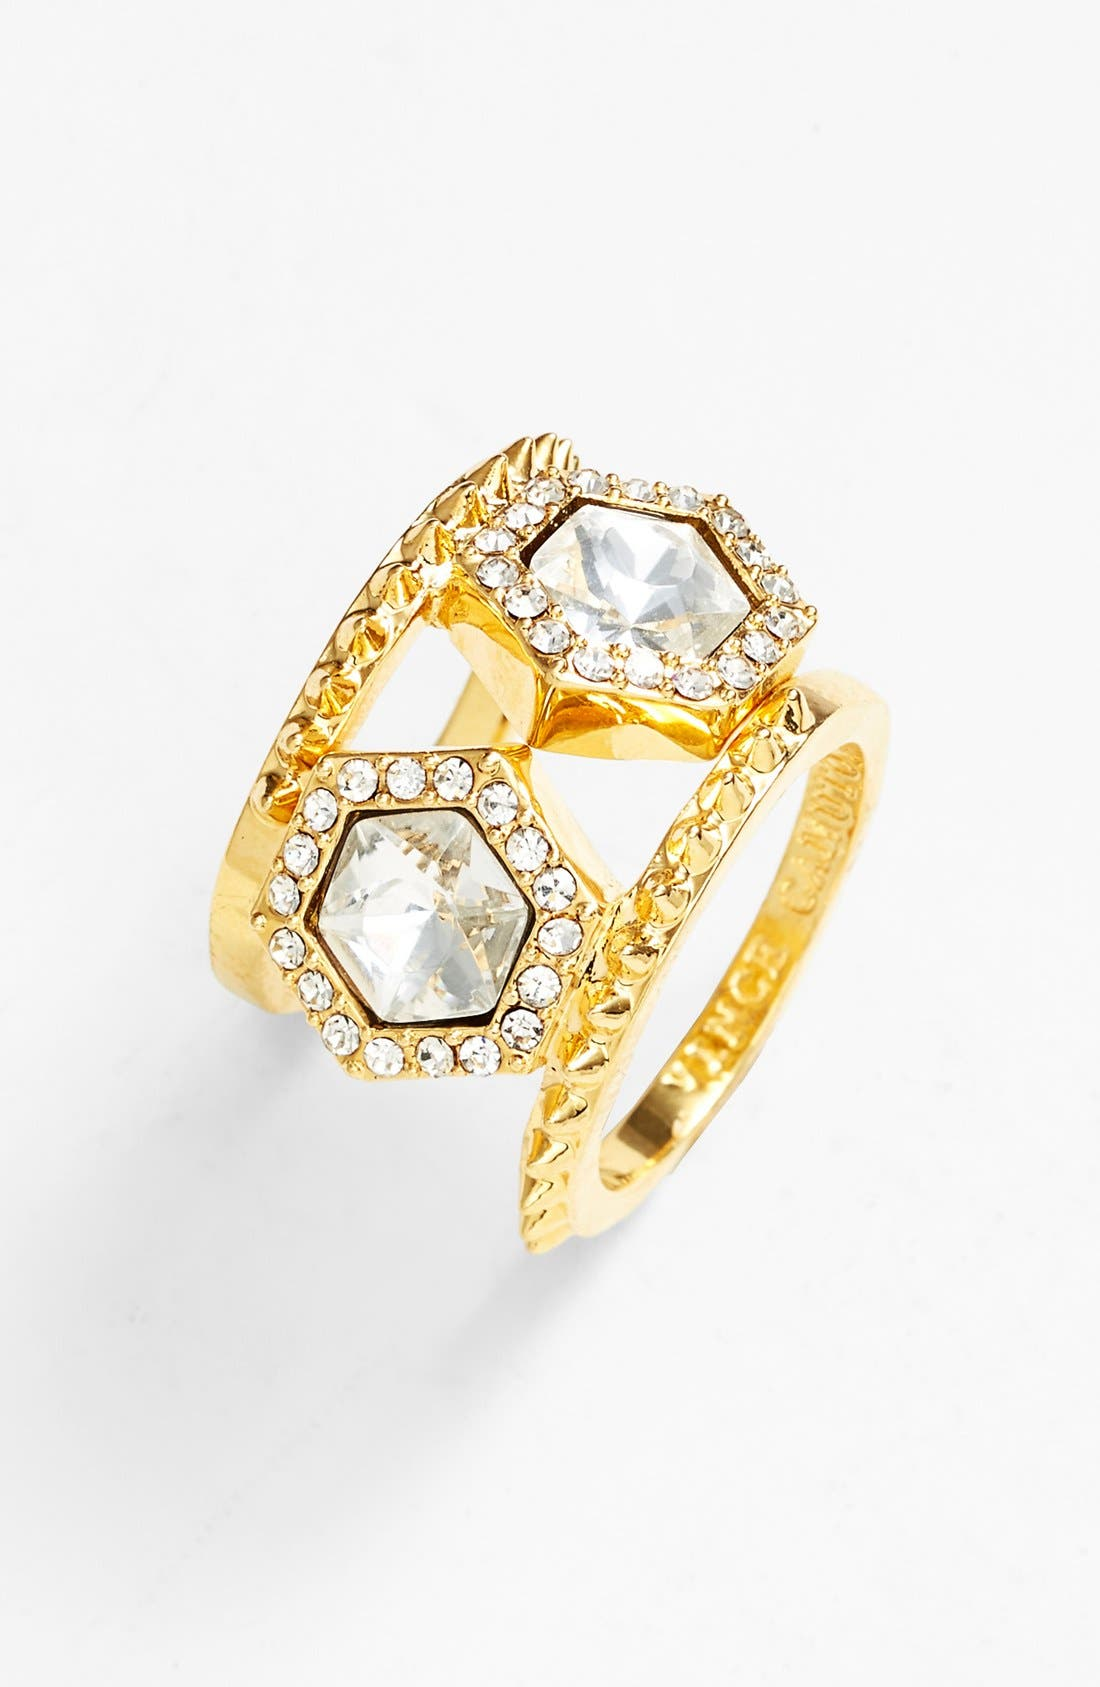 Alternate Image 1 Selected - Vince Camuto 'Diamonds in the Sky' Stackable Rings (Set of 2)